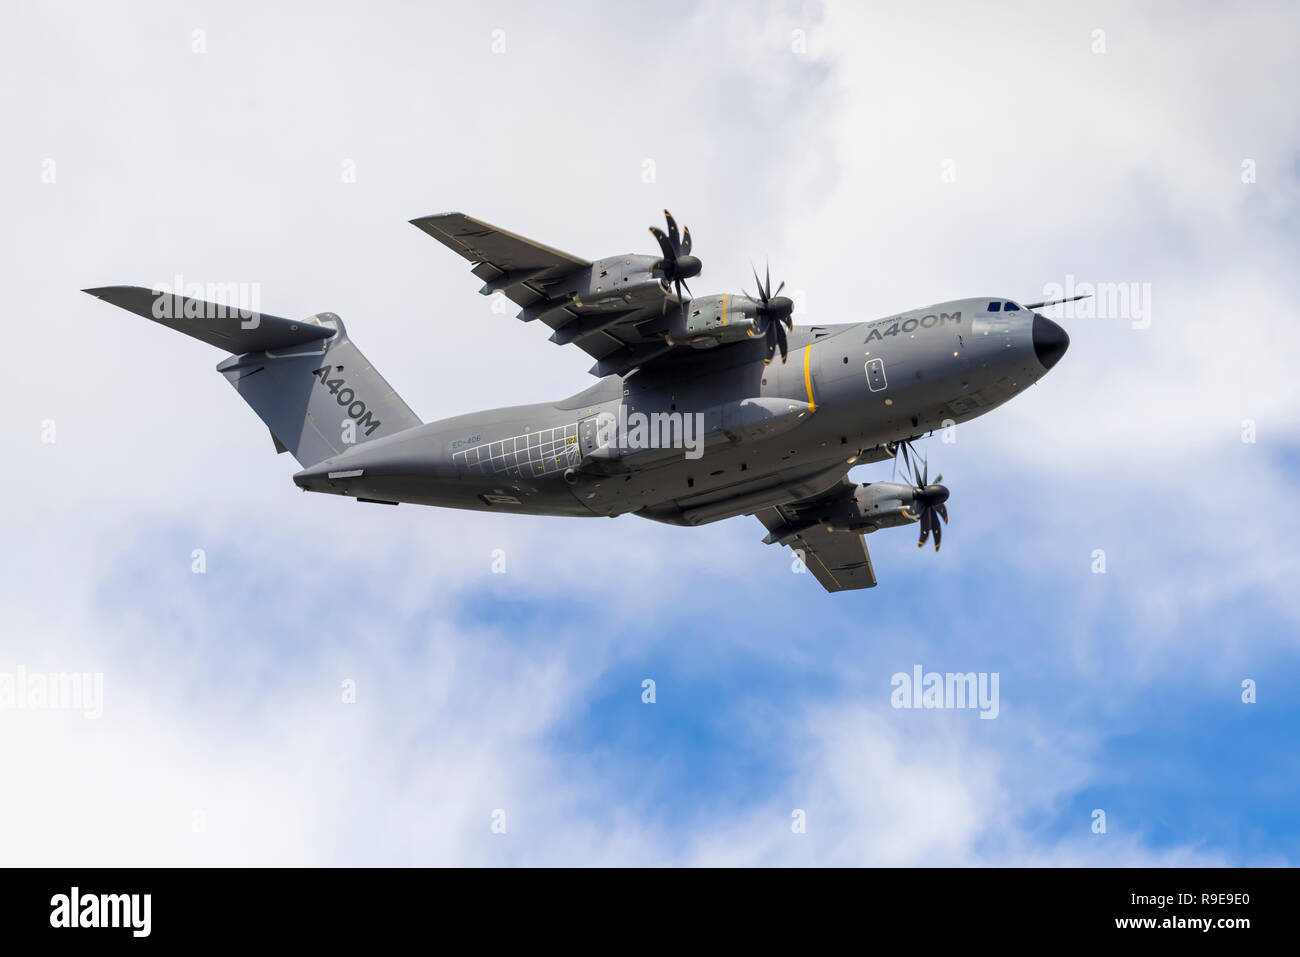 Airbus A400M Atlas military transport aircraft performs a clean pass (wheels up), flying overhead from left to right. - Stock Image